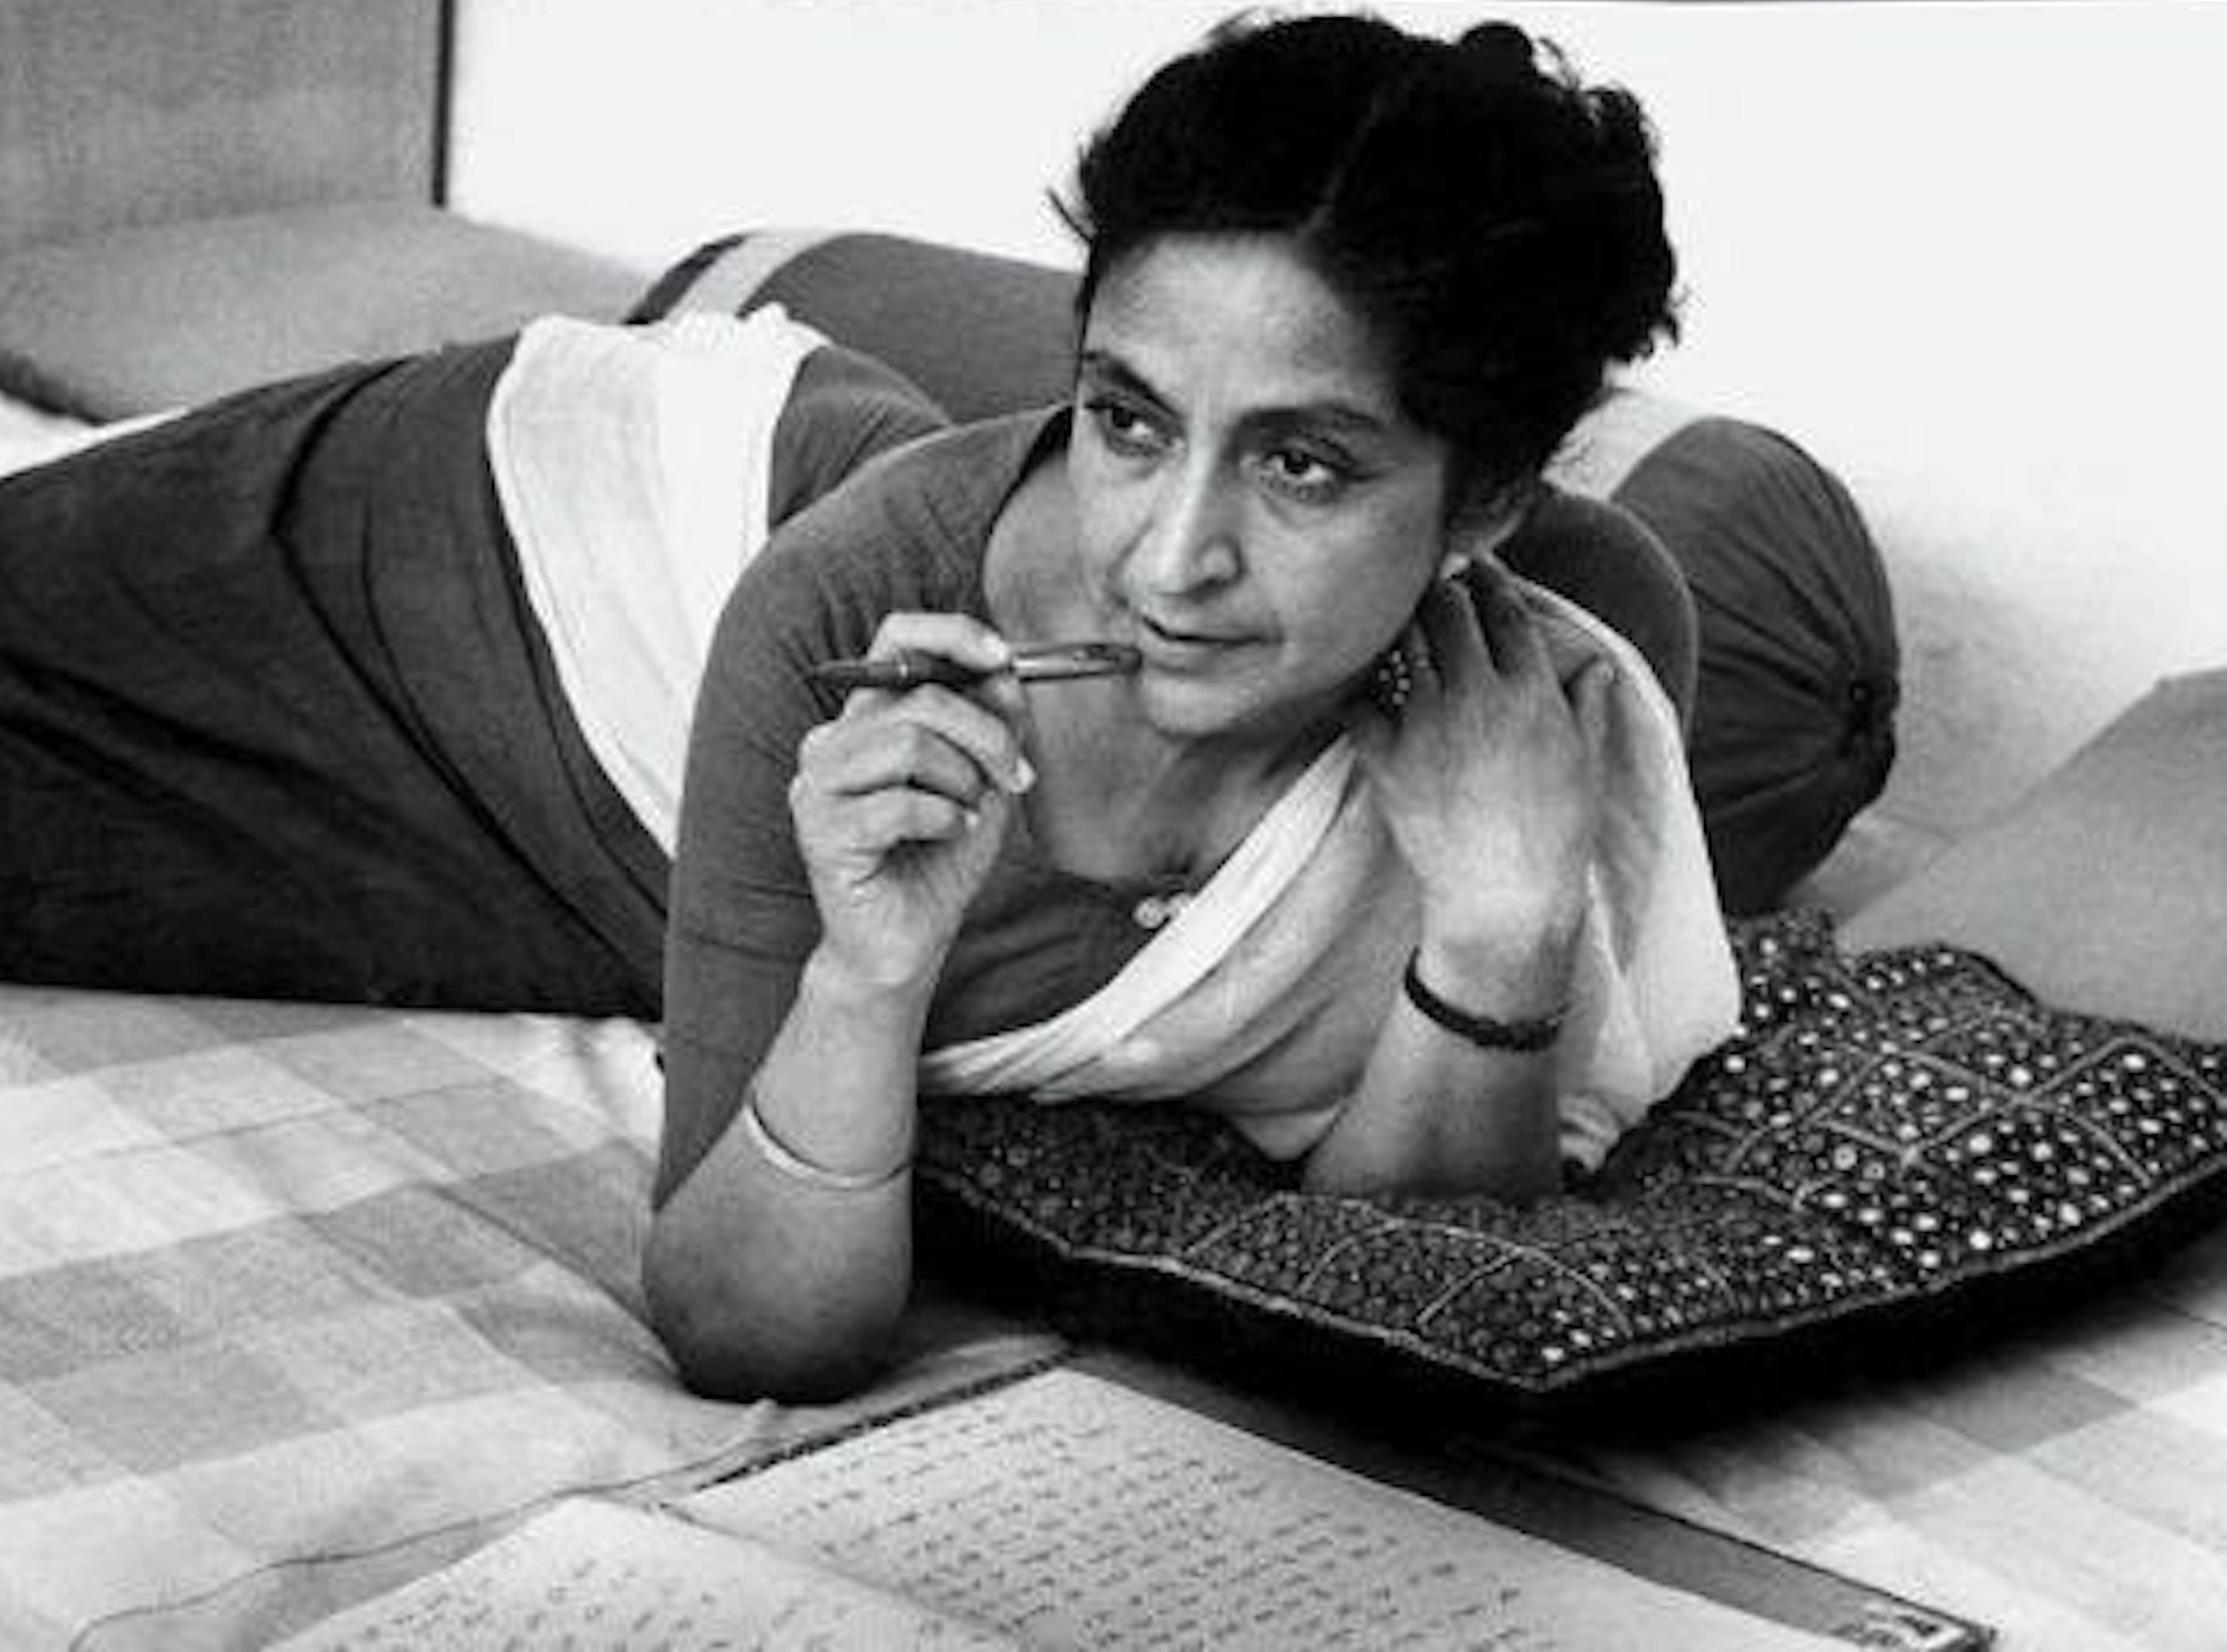 amrita pritam Amrita met sahir sometime around 1944 in preet nagar, a village between lahore and amritsar she was at this time married to pritam singh, who was an editor, but theirs was not the best of marriages.